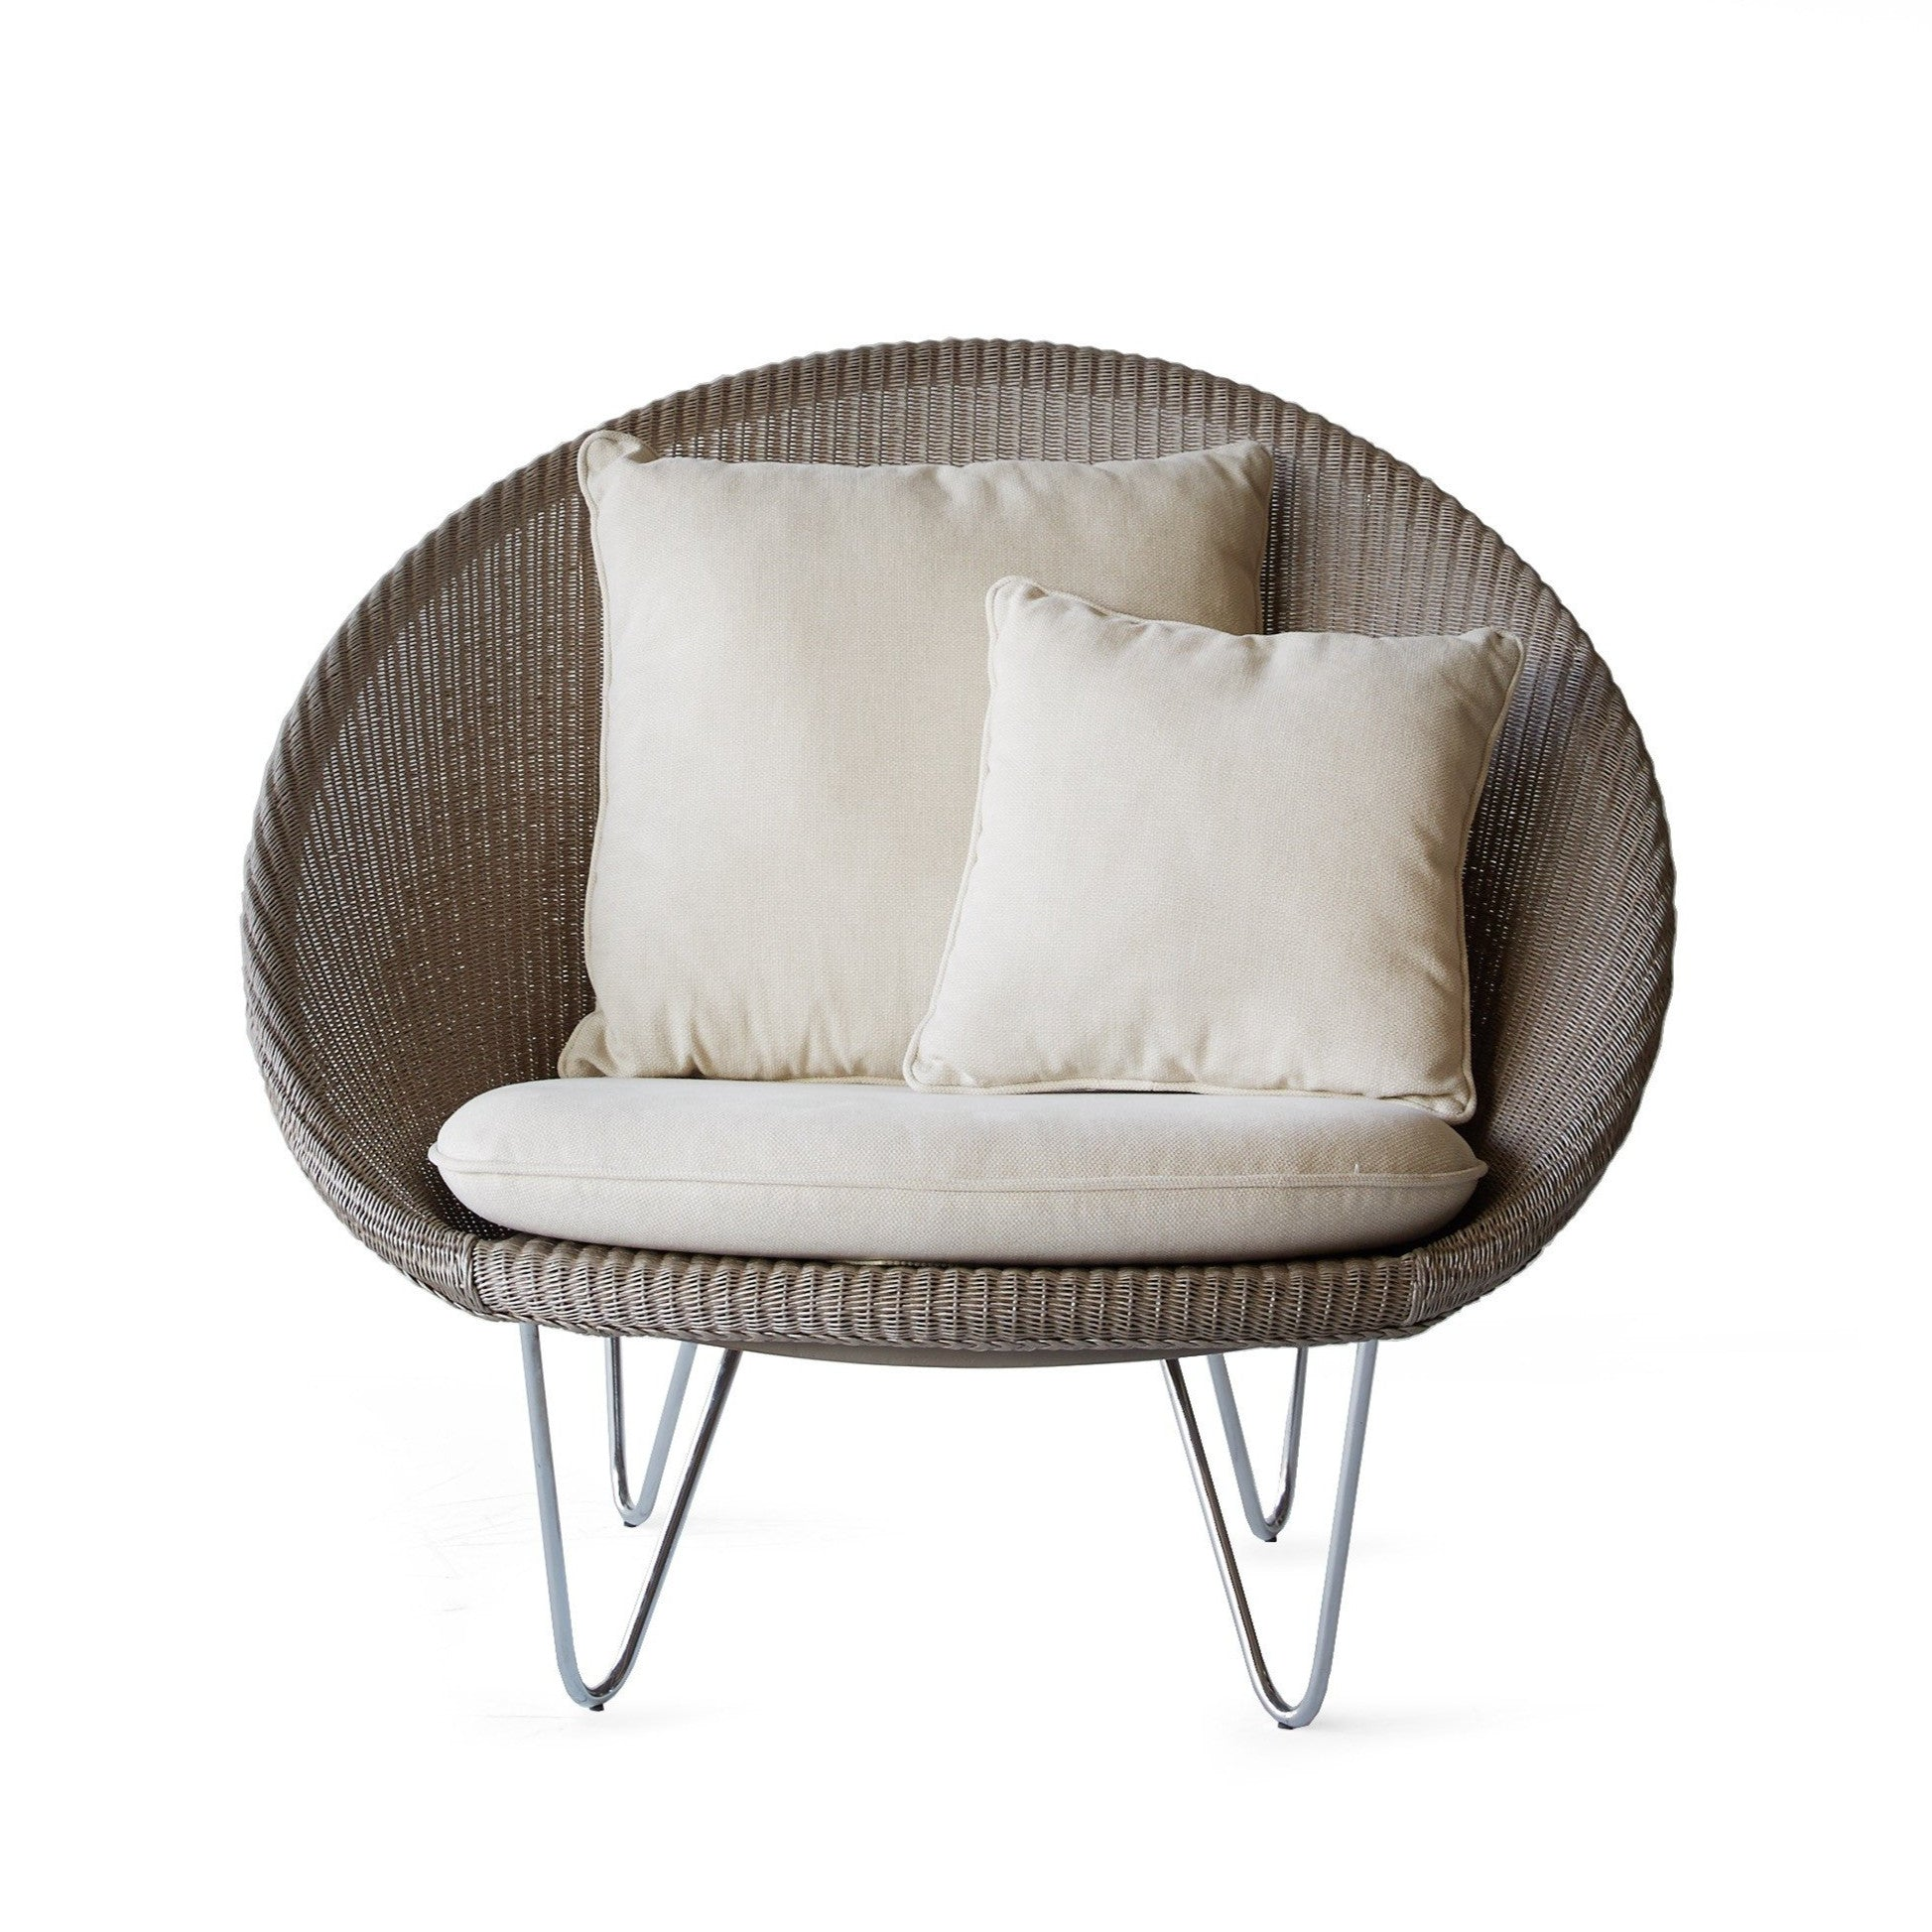 Joe Cocoon Chair | Nacre MW-Vincent Sheppard-Originals Furniture - 1